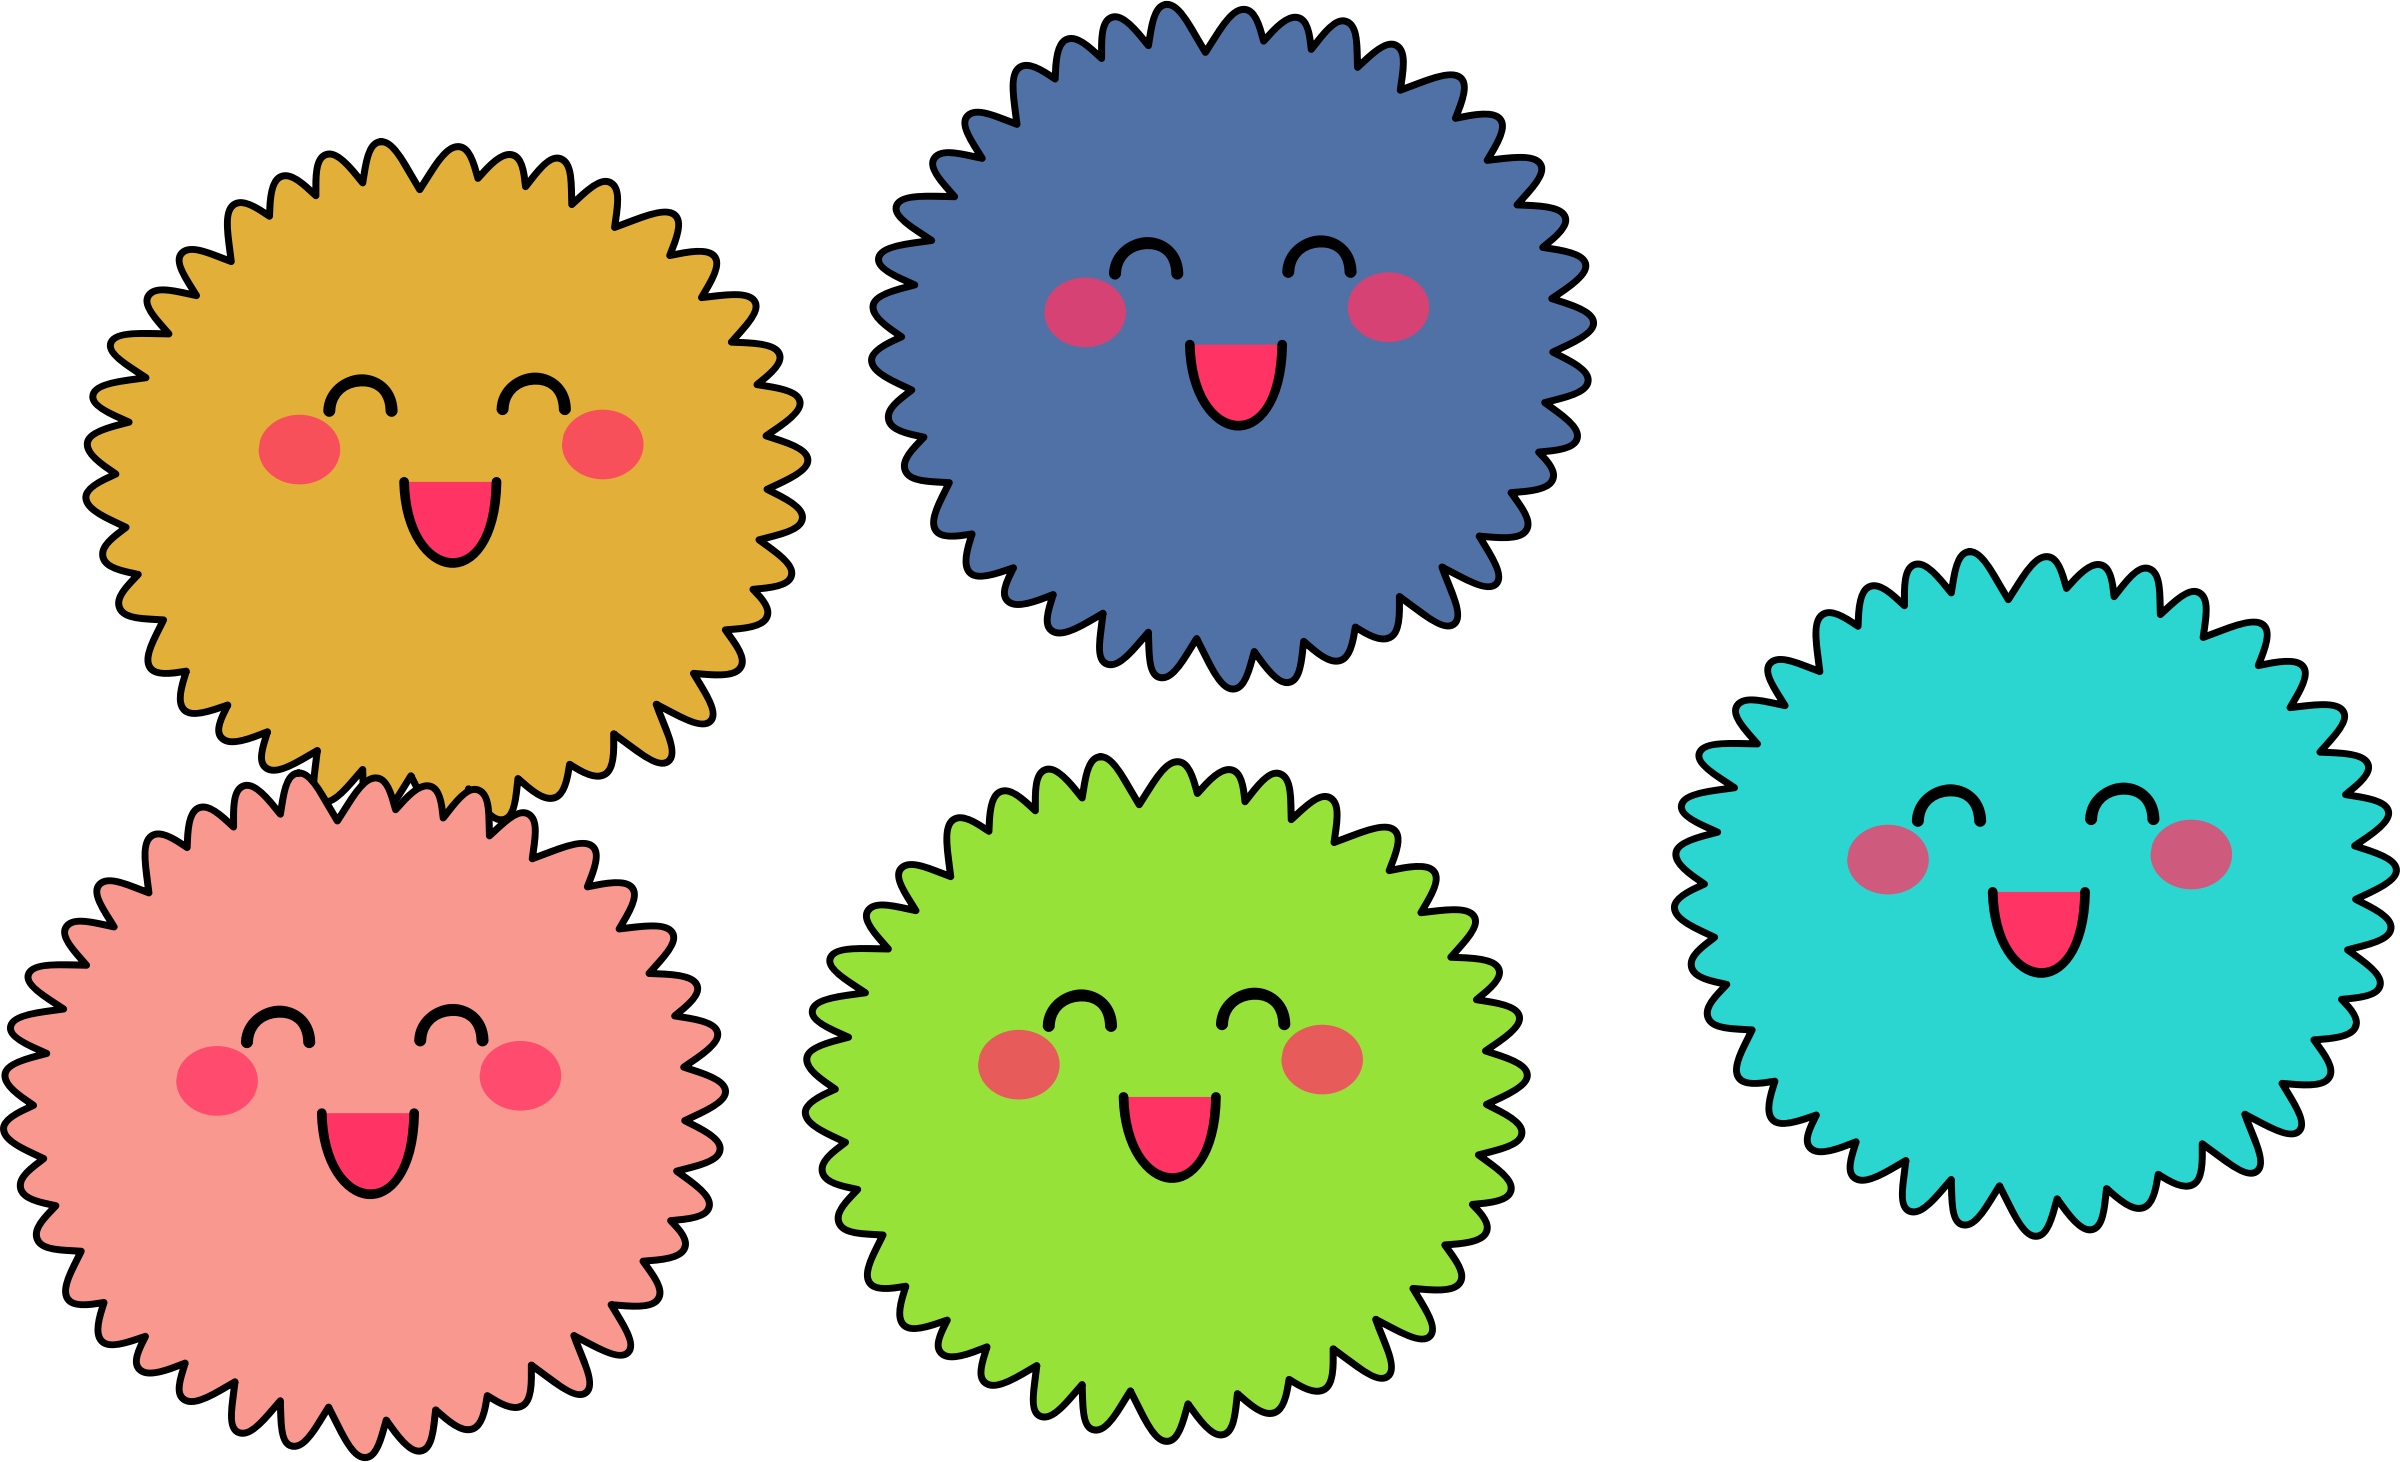 Fuzzy Clipart For Bedrooms.